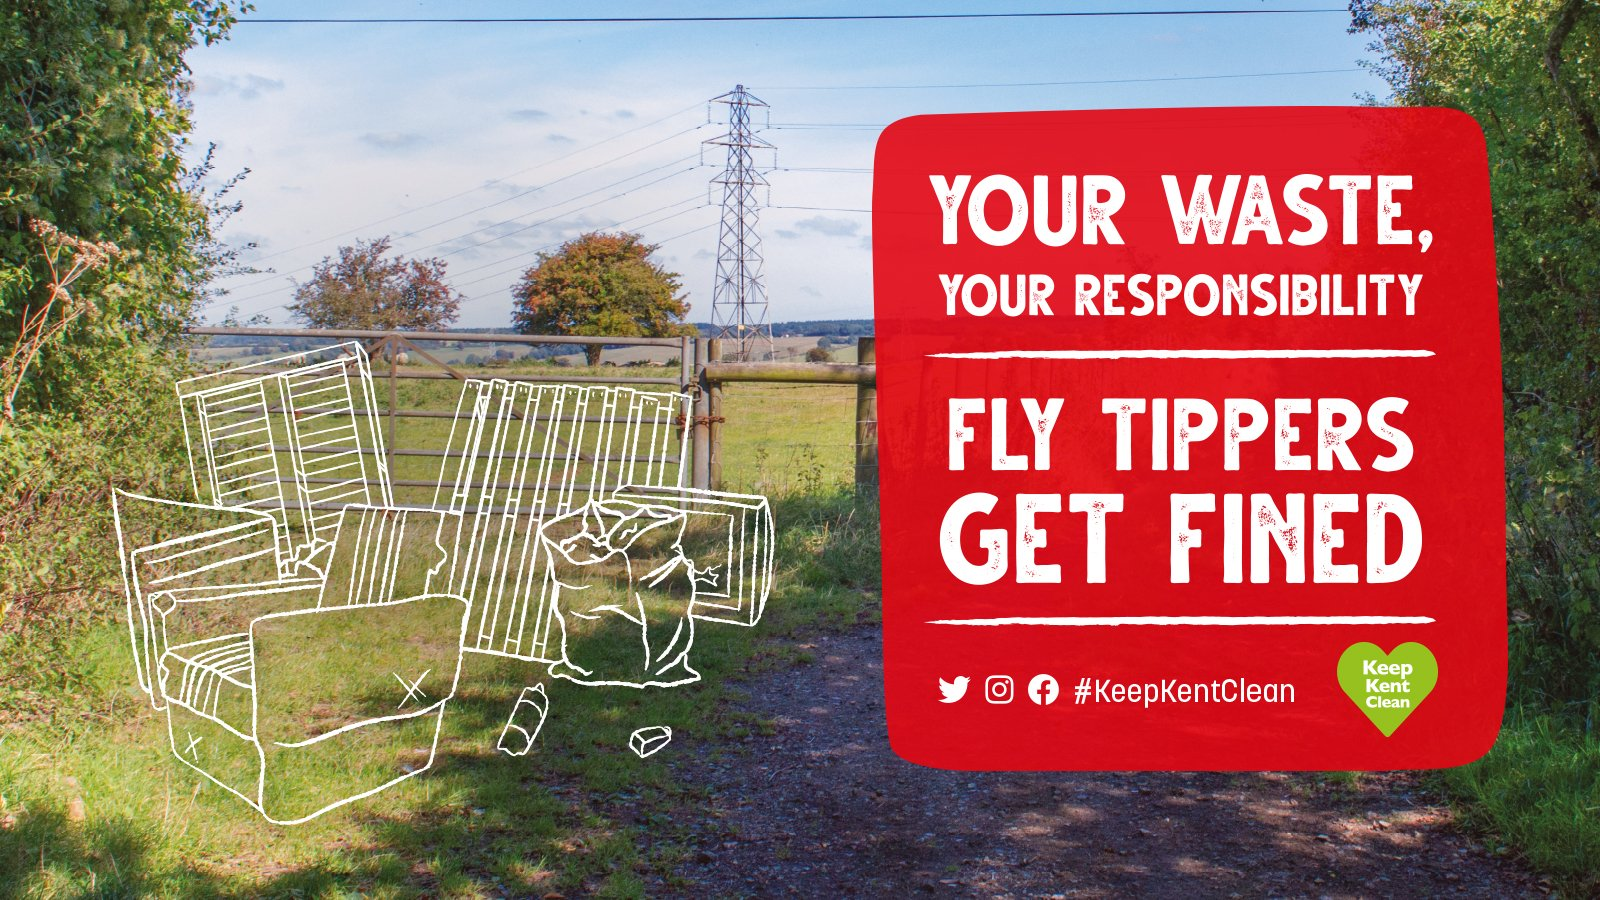 Councils of Kent working in partnership to tackle flytipping